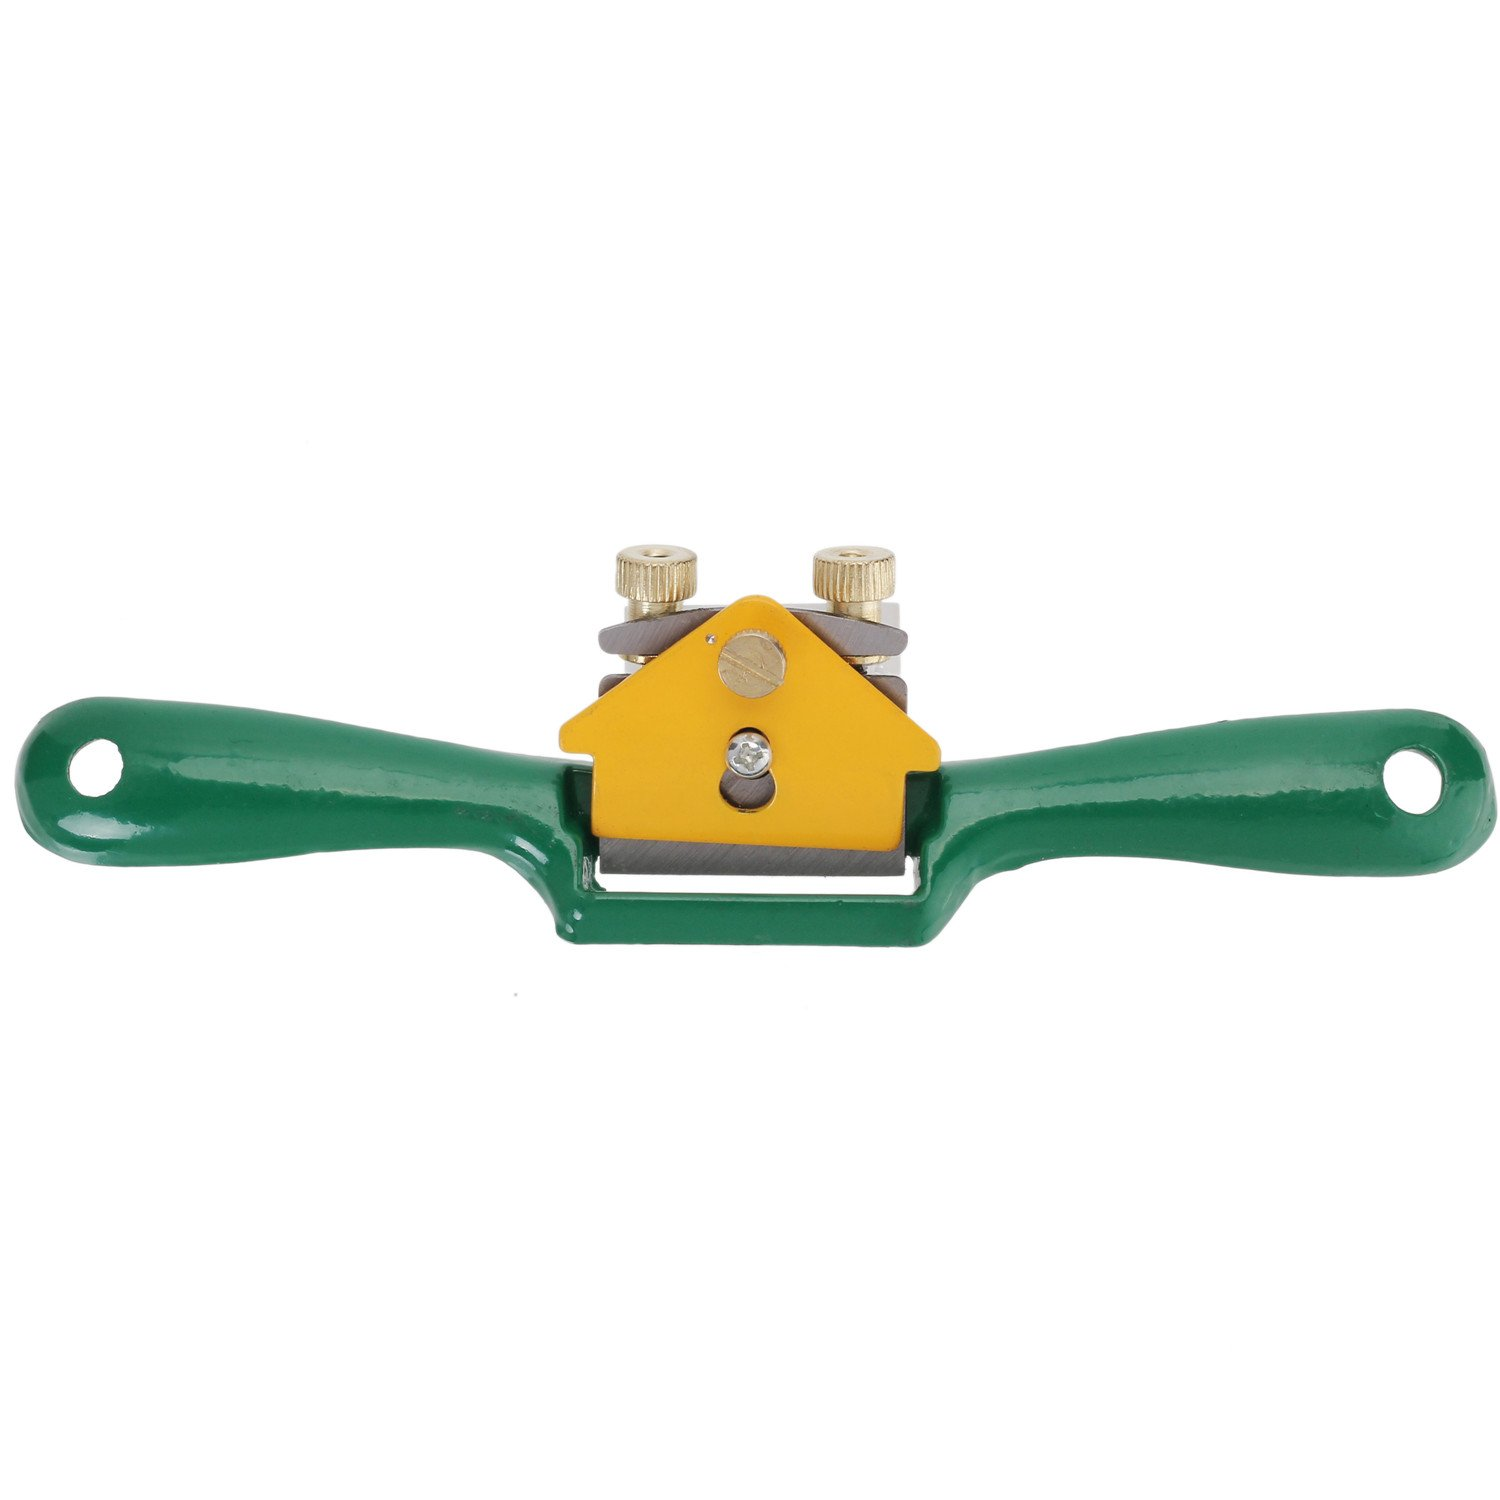 Refaxi 210mm Spoke Shave Manual Plane Planer Woodworking Blade Hand Tools Green by ReFaXi (Image #1)